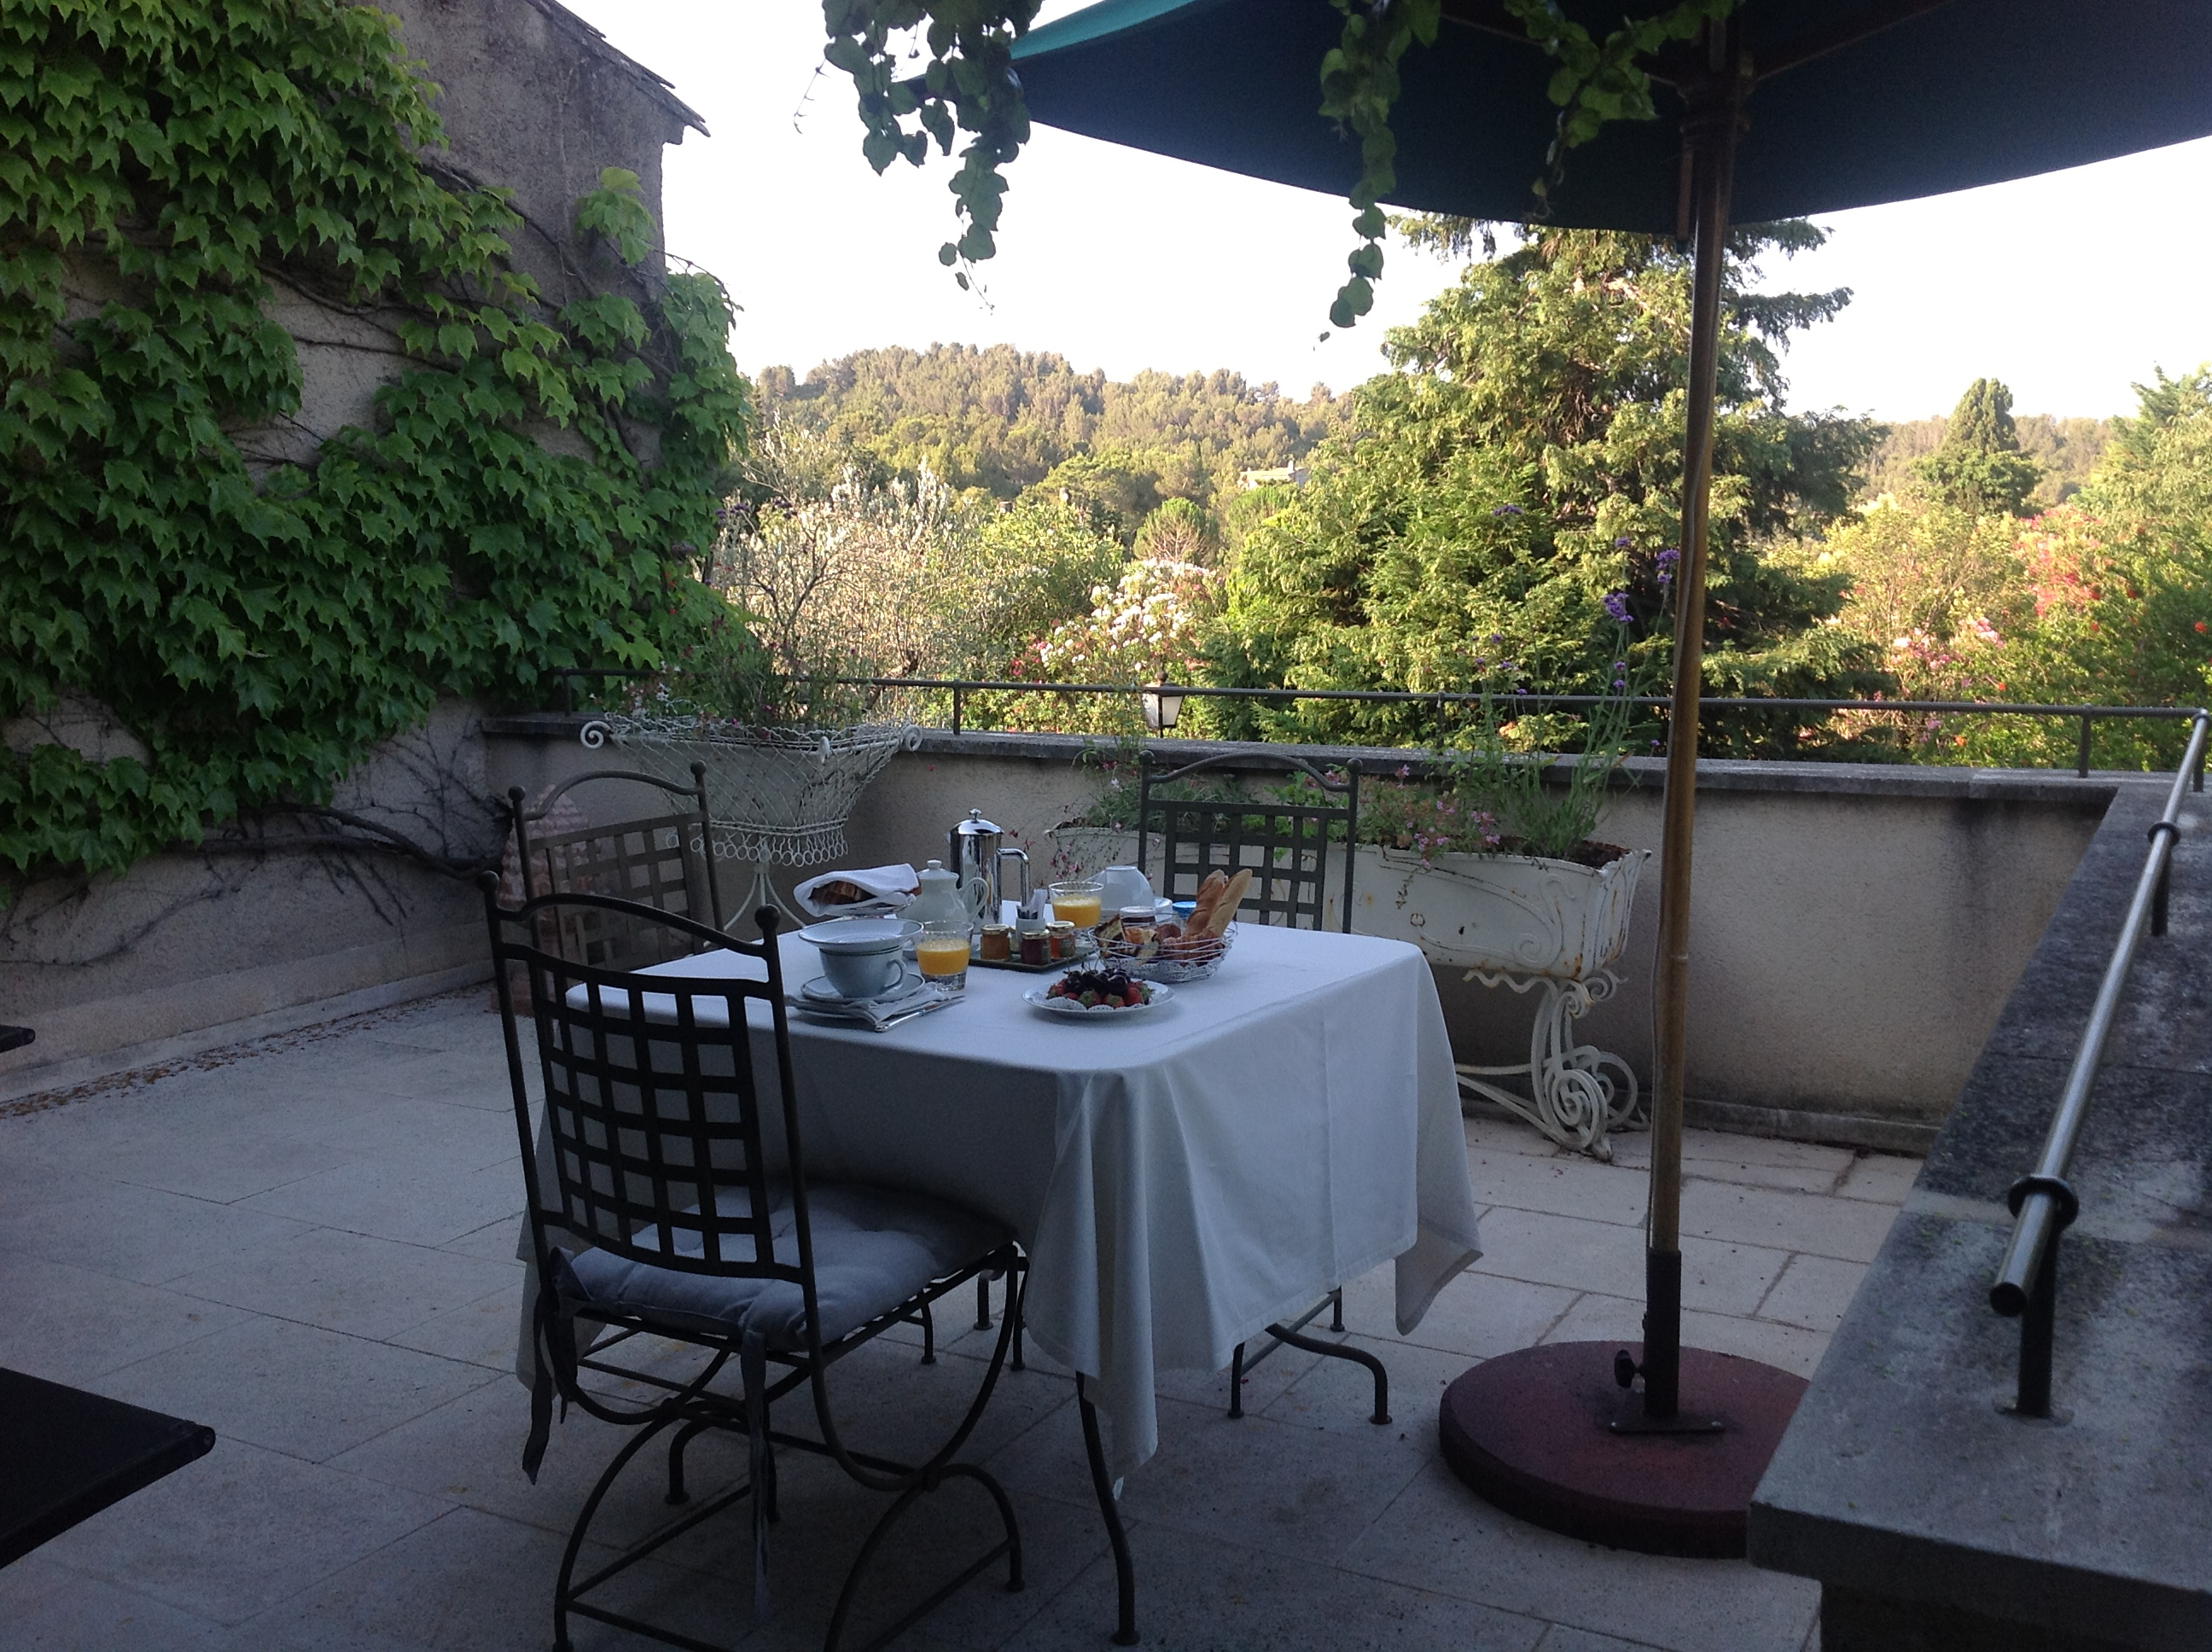 Relais chateau french for a while for Breakfast terrace